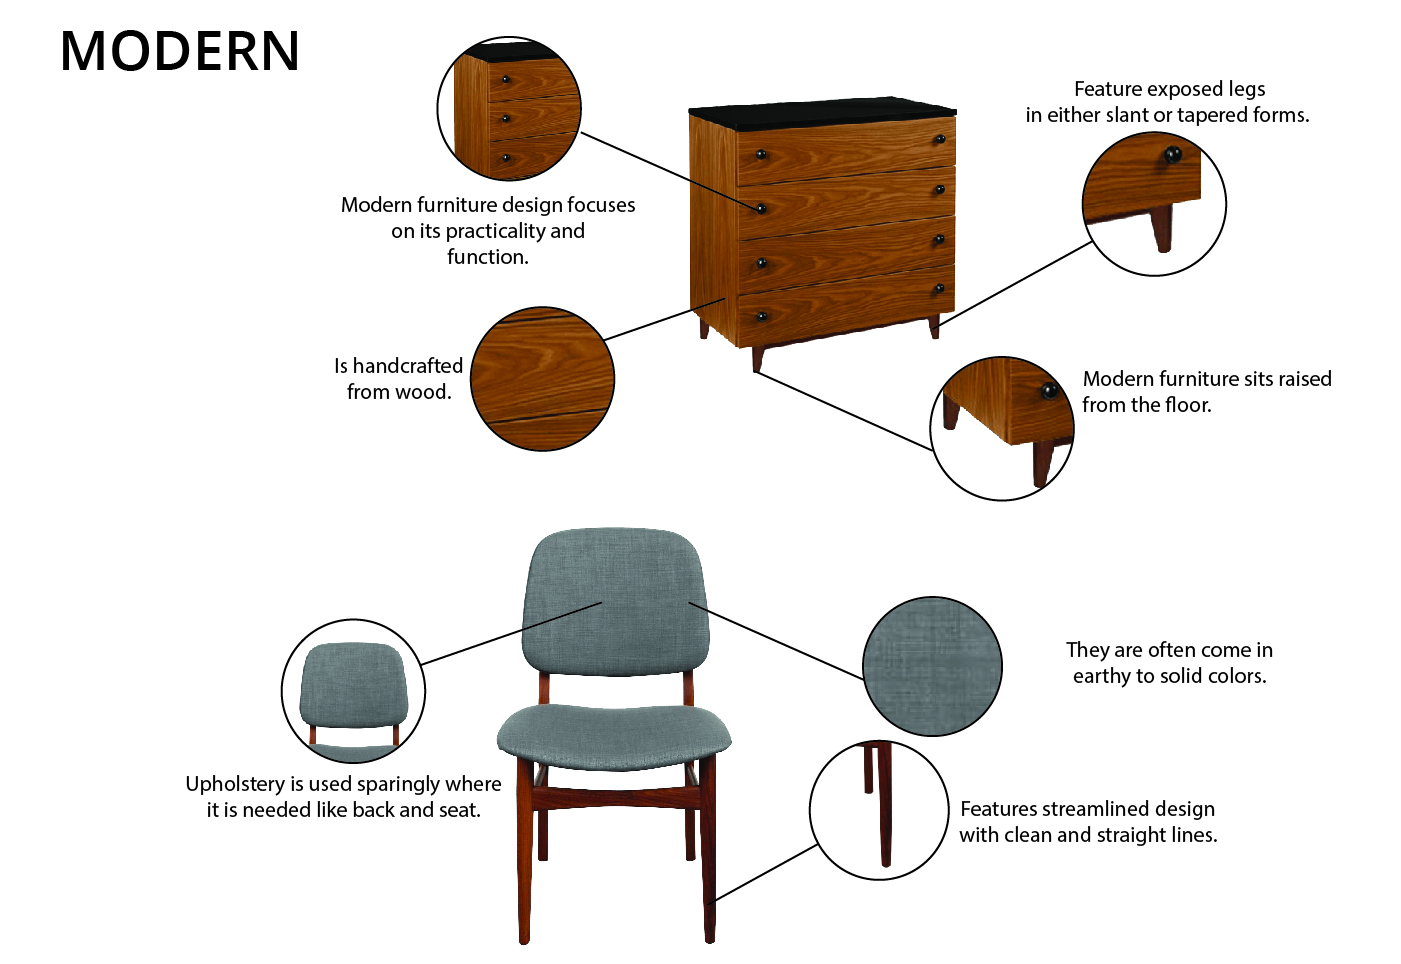 Contemporary Vs Modern Furniture Breaking The Myth